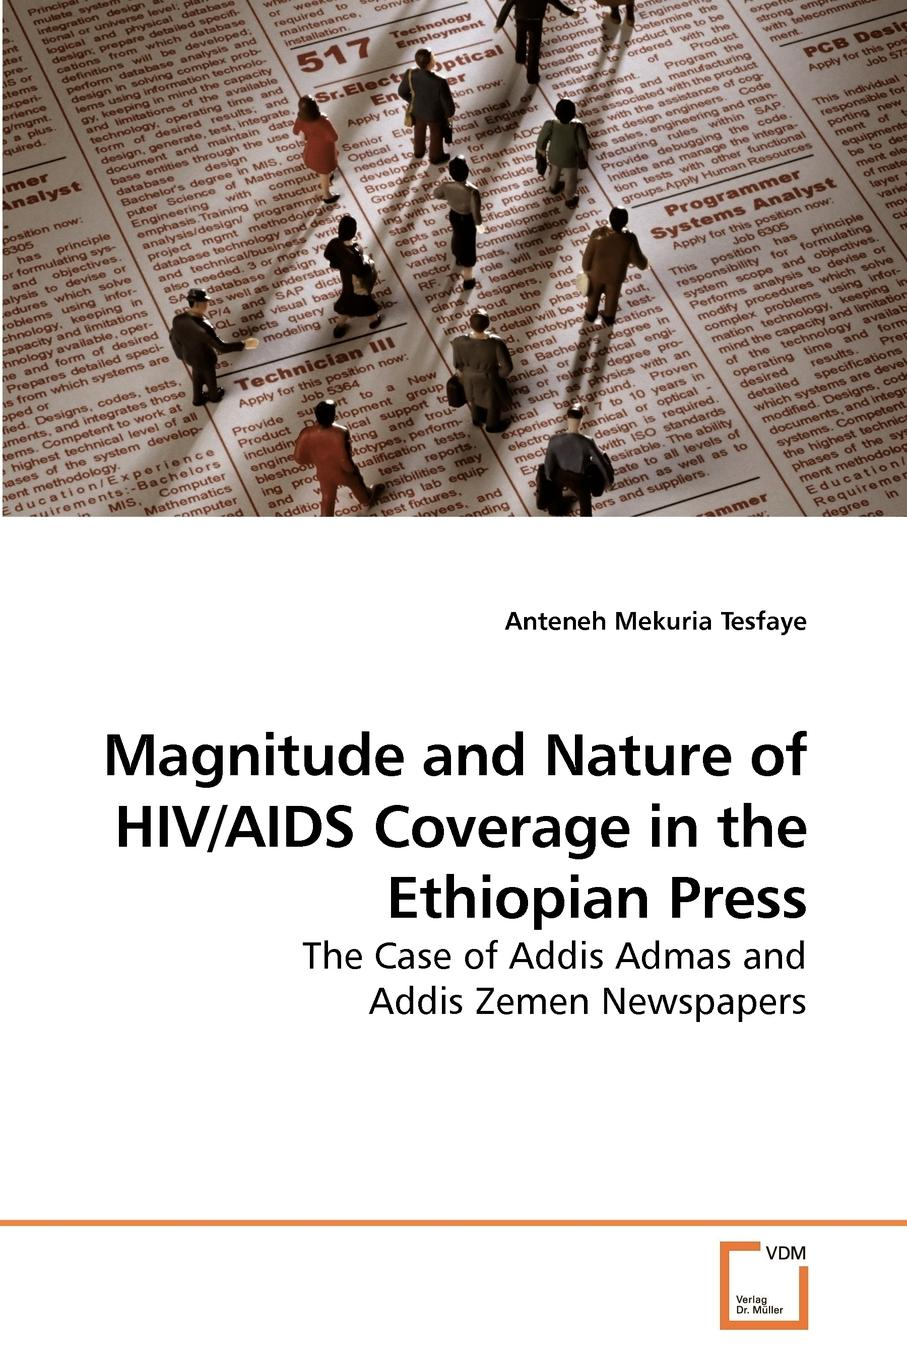 Anteneh Mekuria Tesfaye Magnitude and Nature of HIV/AIDS Coverage in the Ethiopian Press недорго, оригинальная цена